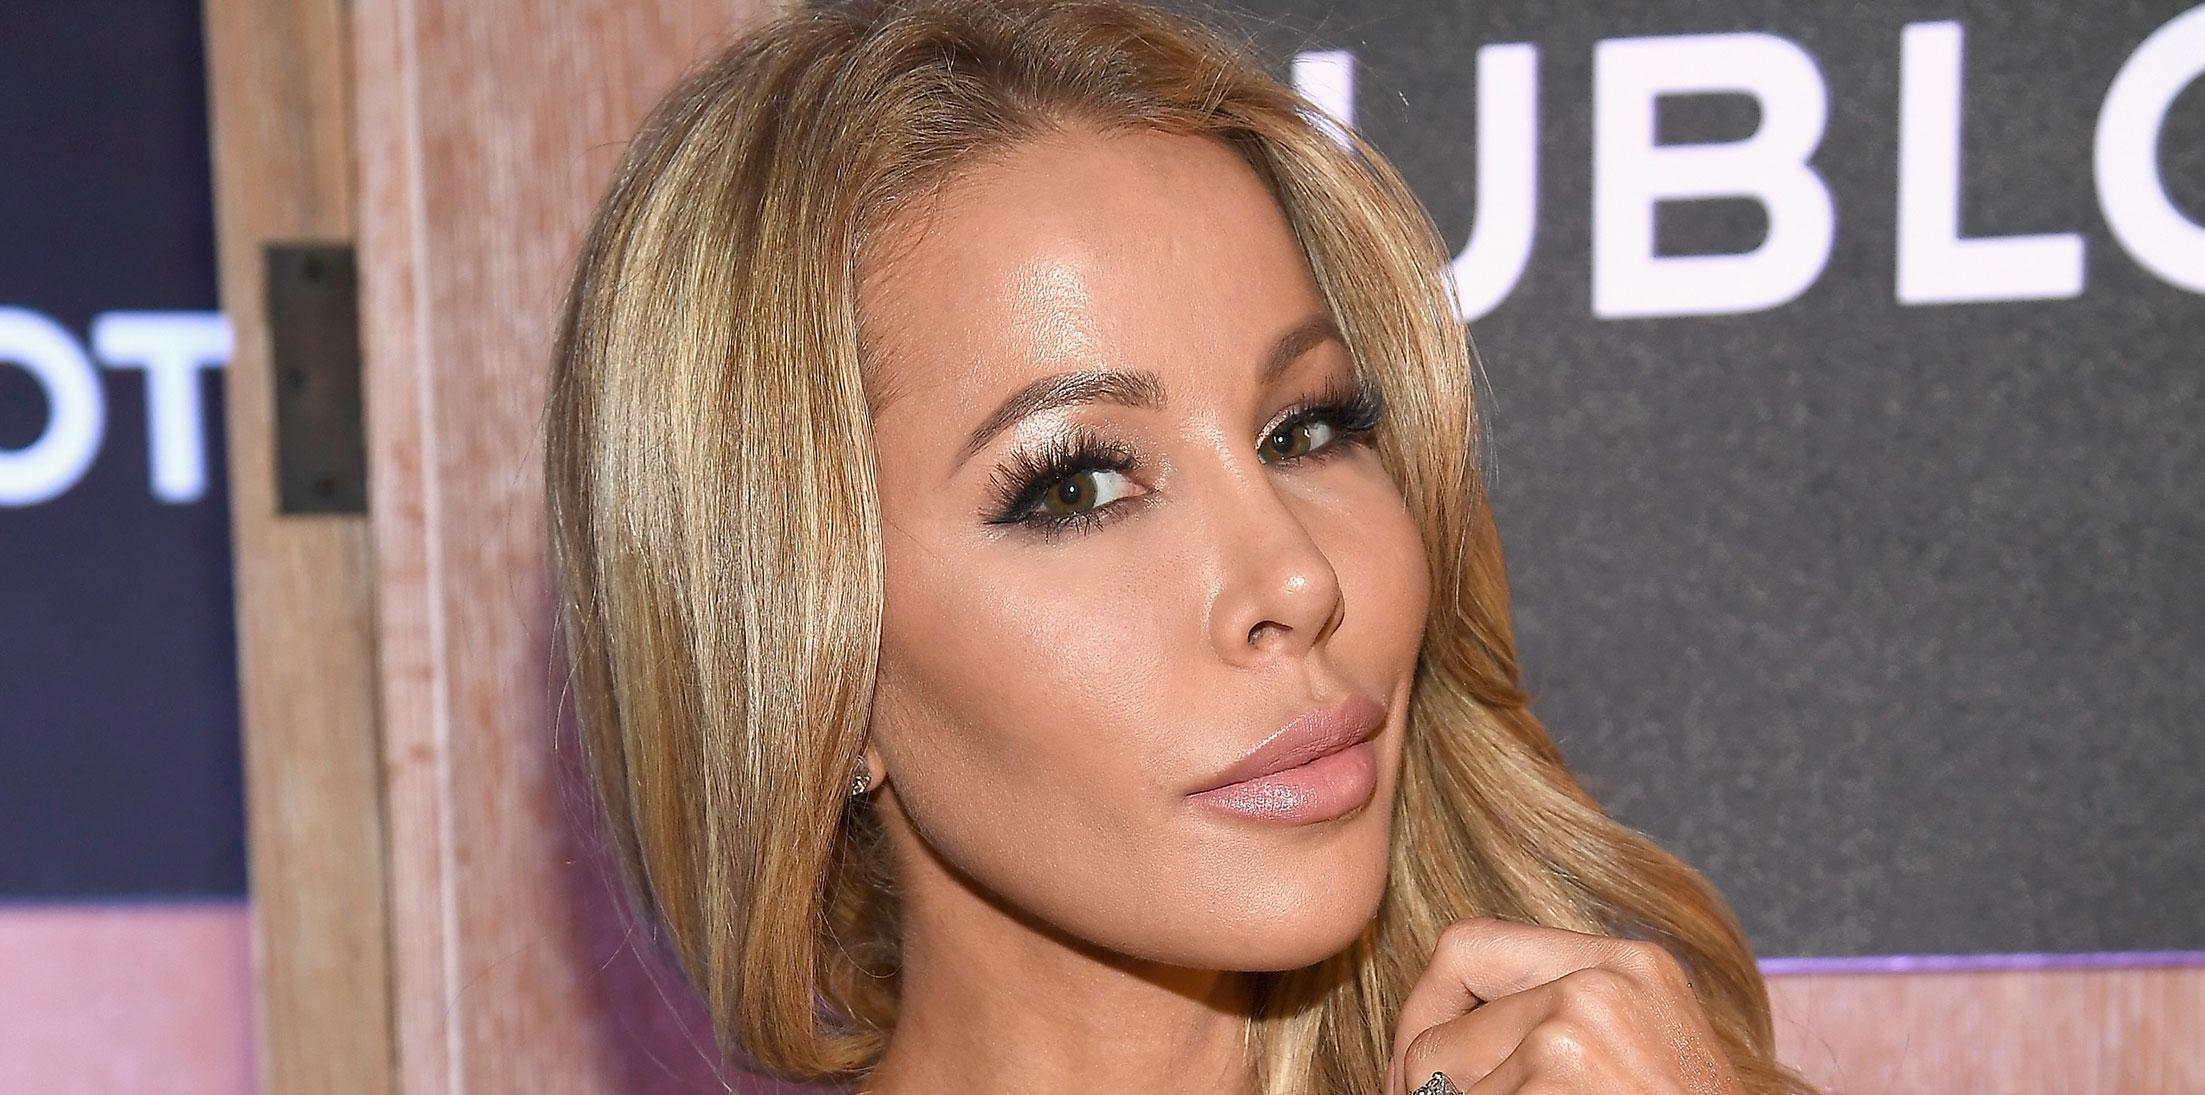 Lisa hochstein private jet hurricane irma wide